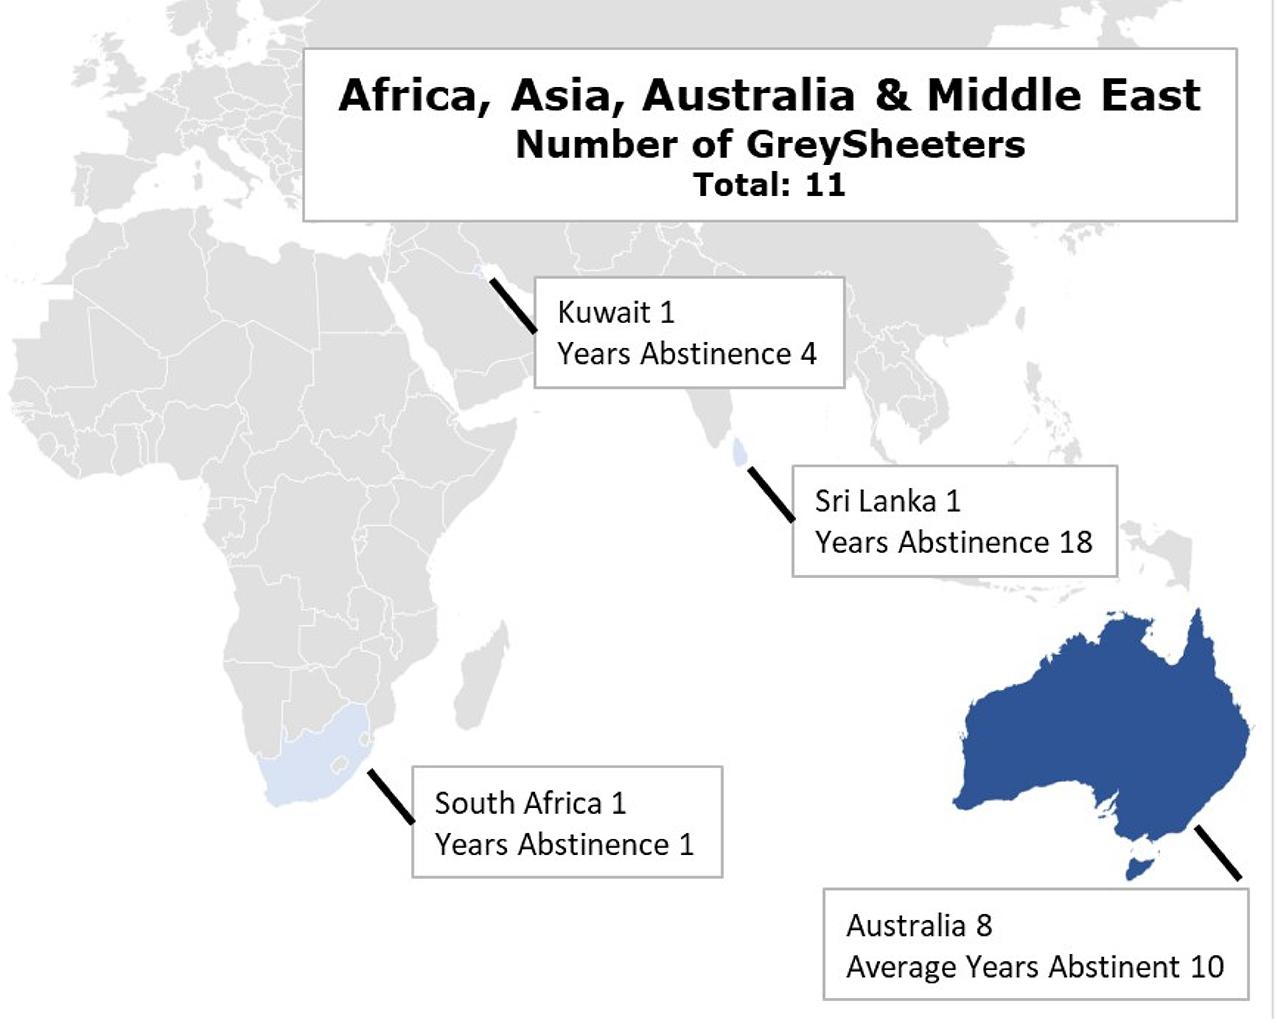 Map showing the number of GreySheeters in South Africa, Kuwait, Sri Lanka, and Australia